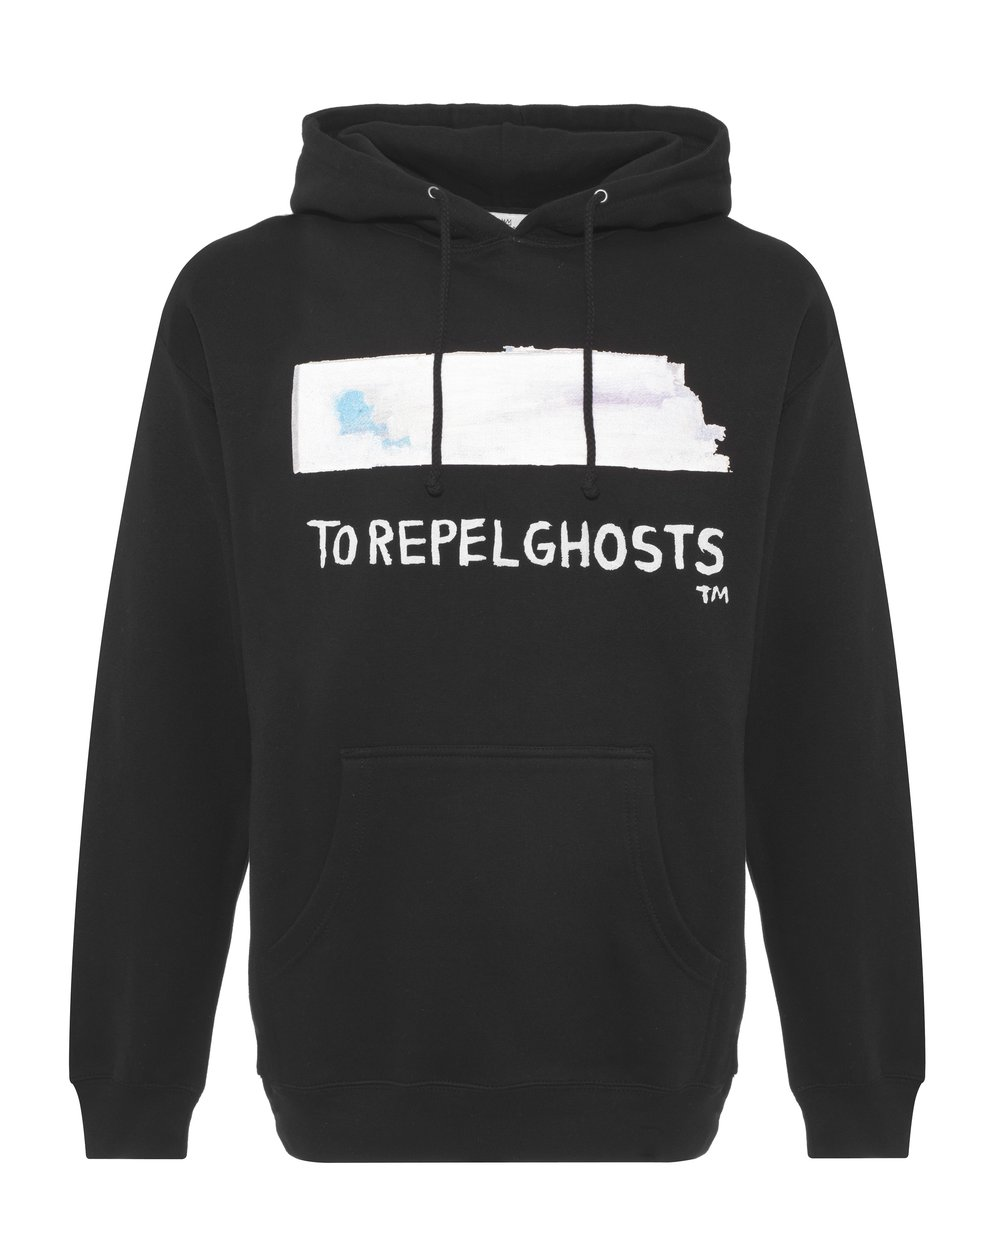 BASQUIAT - TO REPEL GHOST HOODIE - BLACK - £205 - BROWNS FASHION.jpg